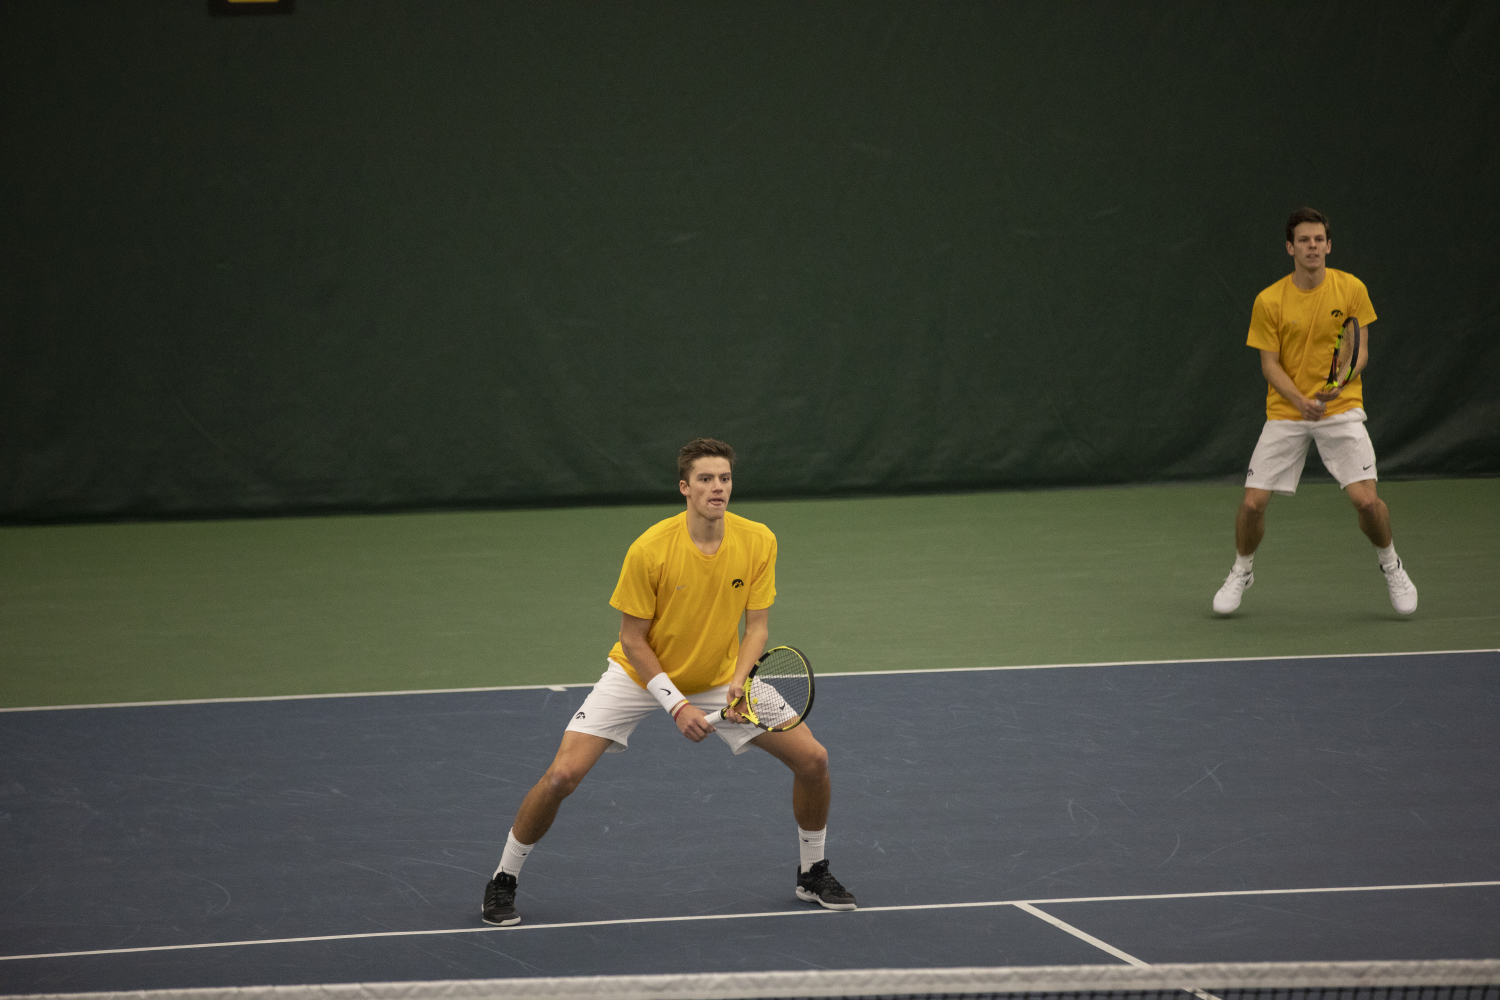 Joe+Tyler+and+Piotr+Smietana+play+a+doubles+match+during+the+Men%27s+tennis+meet+against+University+of+Utah+at+the+Hawkeye+Tennis+and+Recreation+Complex+on+Feb.+10%2C+2019.+The+Hawkeye+team+defeated+Utah+5-2.+